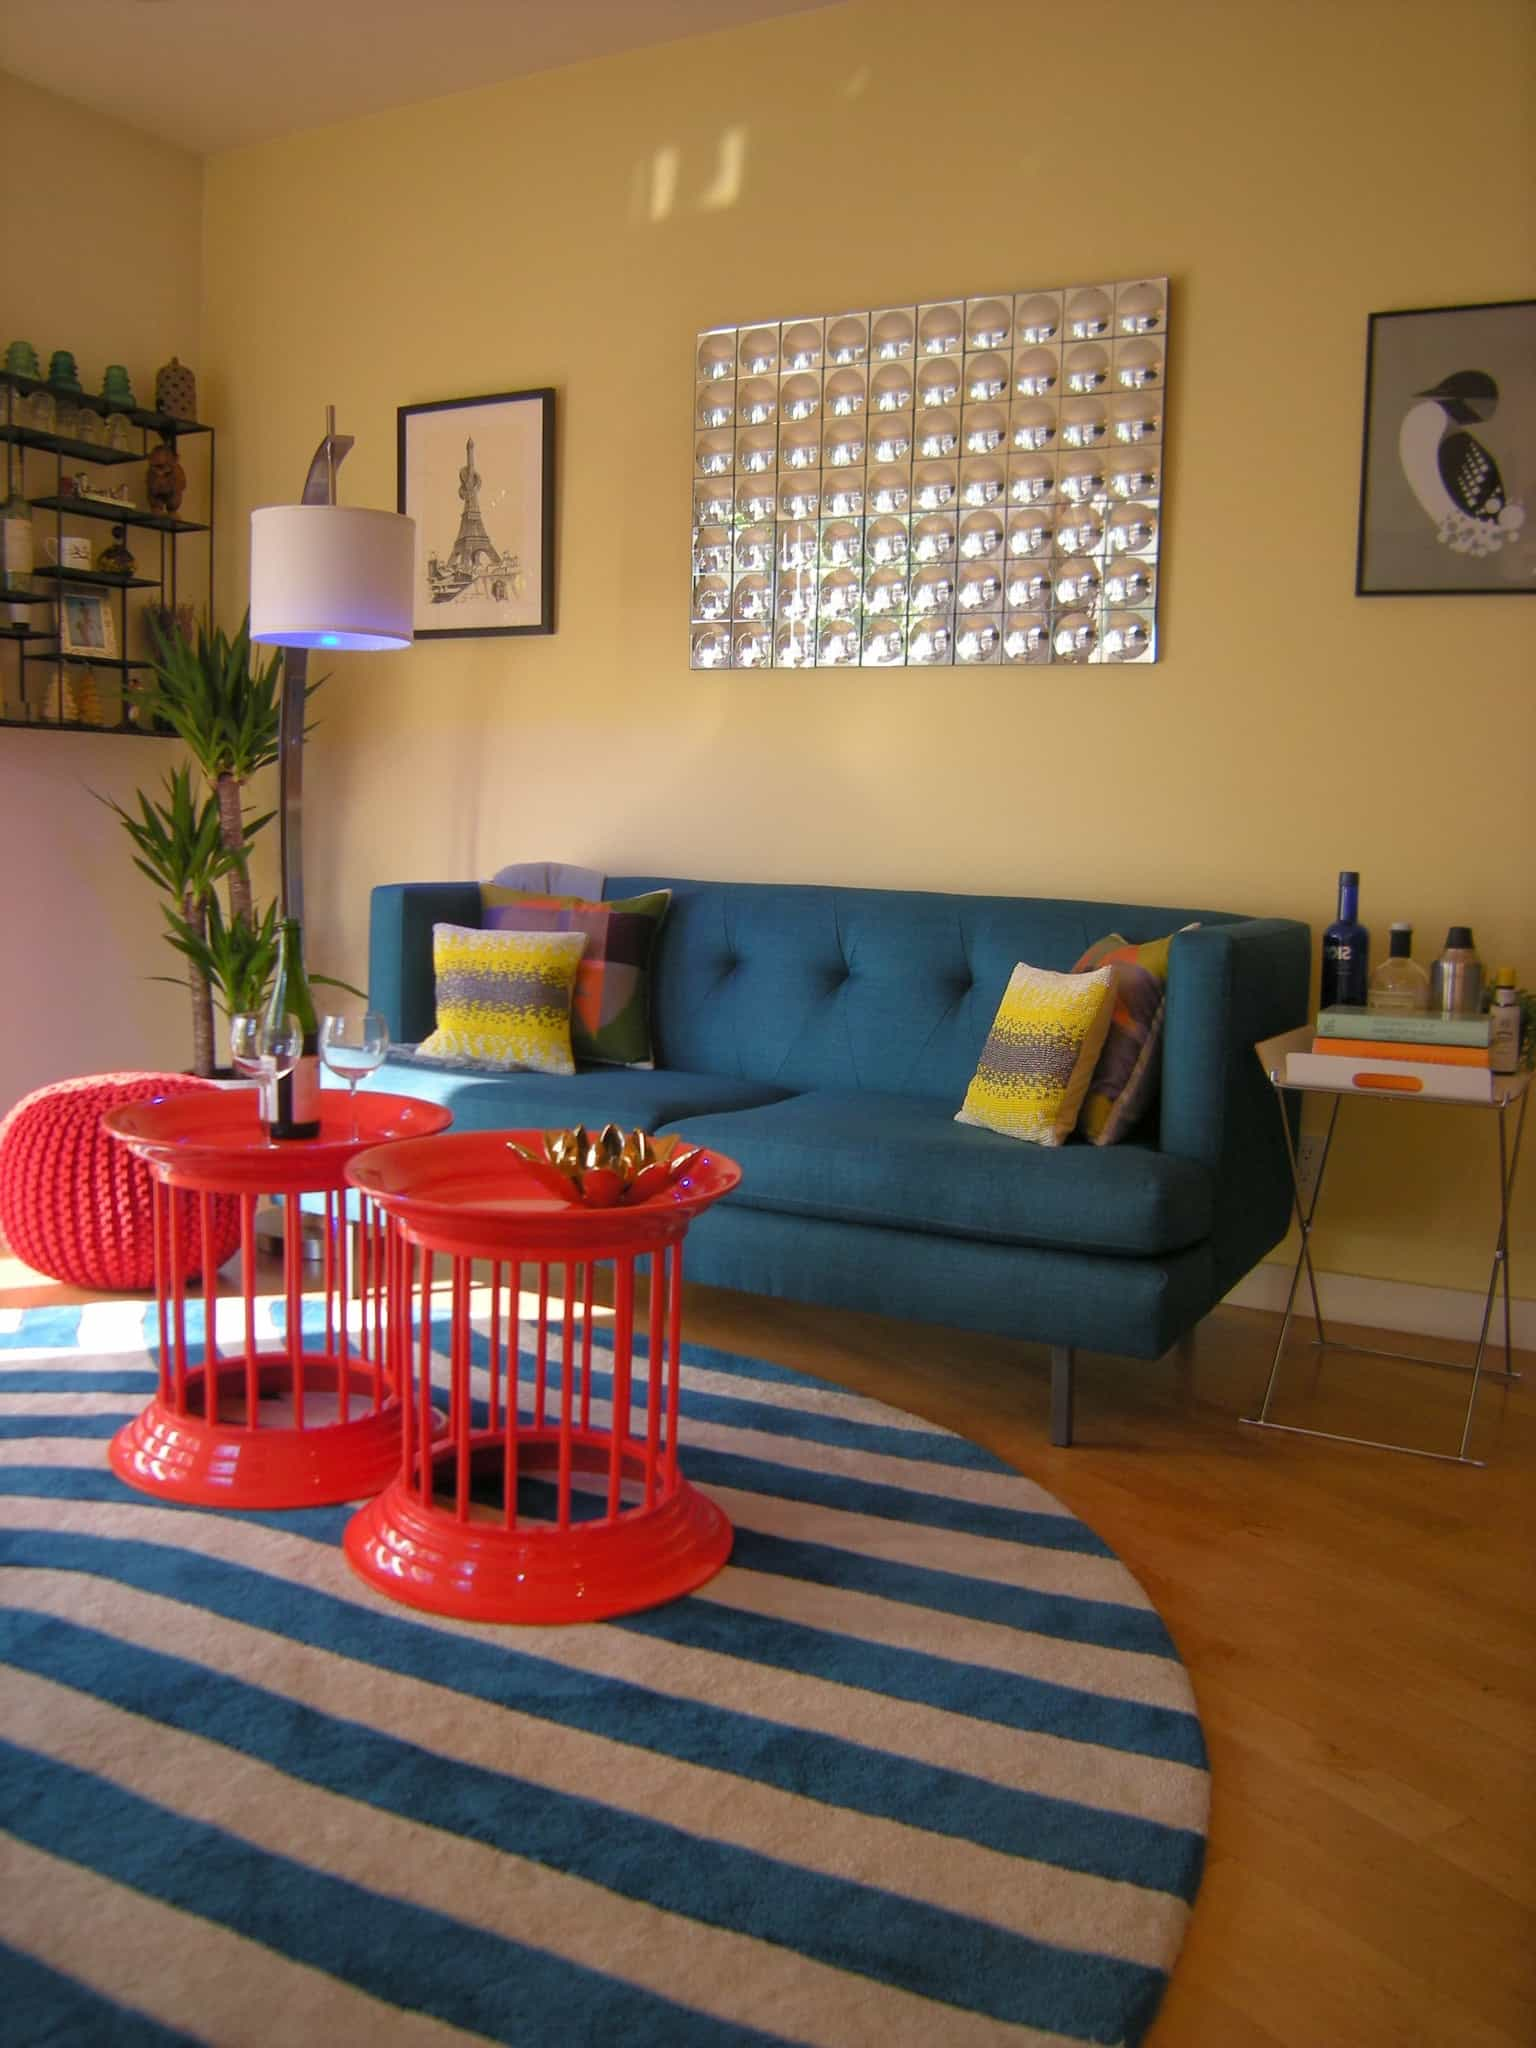 Round Striped Area Rug Placed Under Cozy Coffee Table (View 13 of 28)